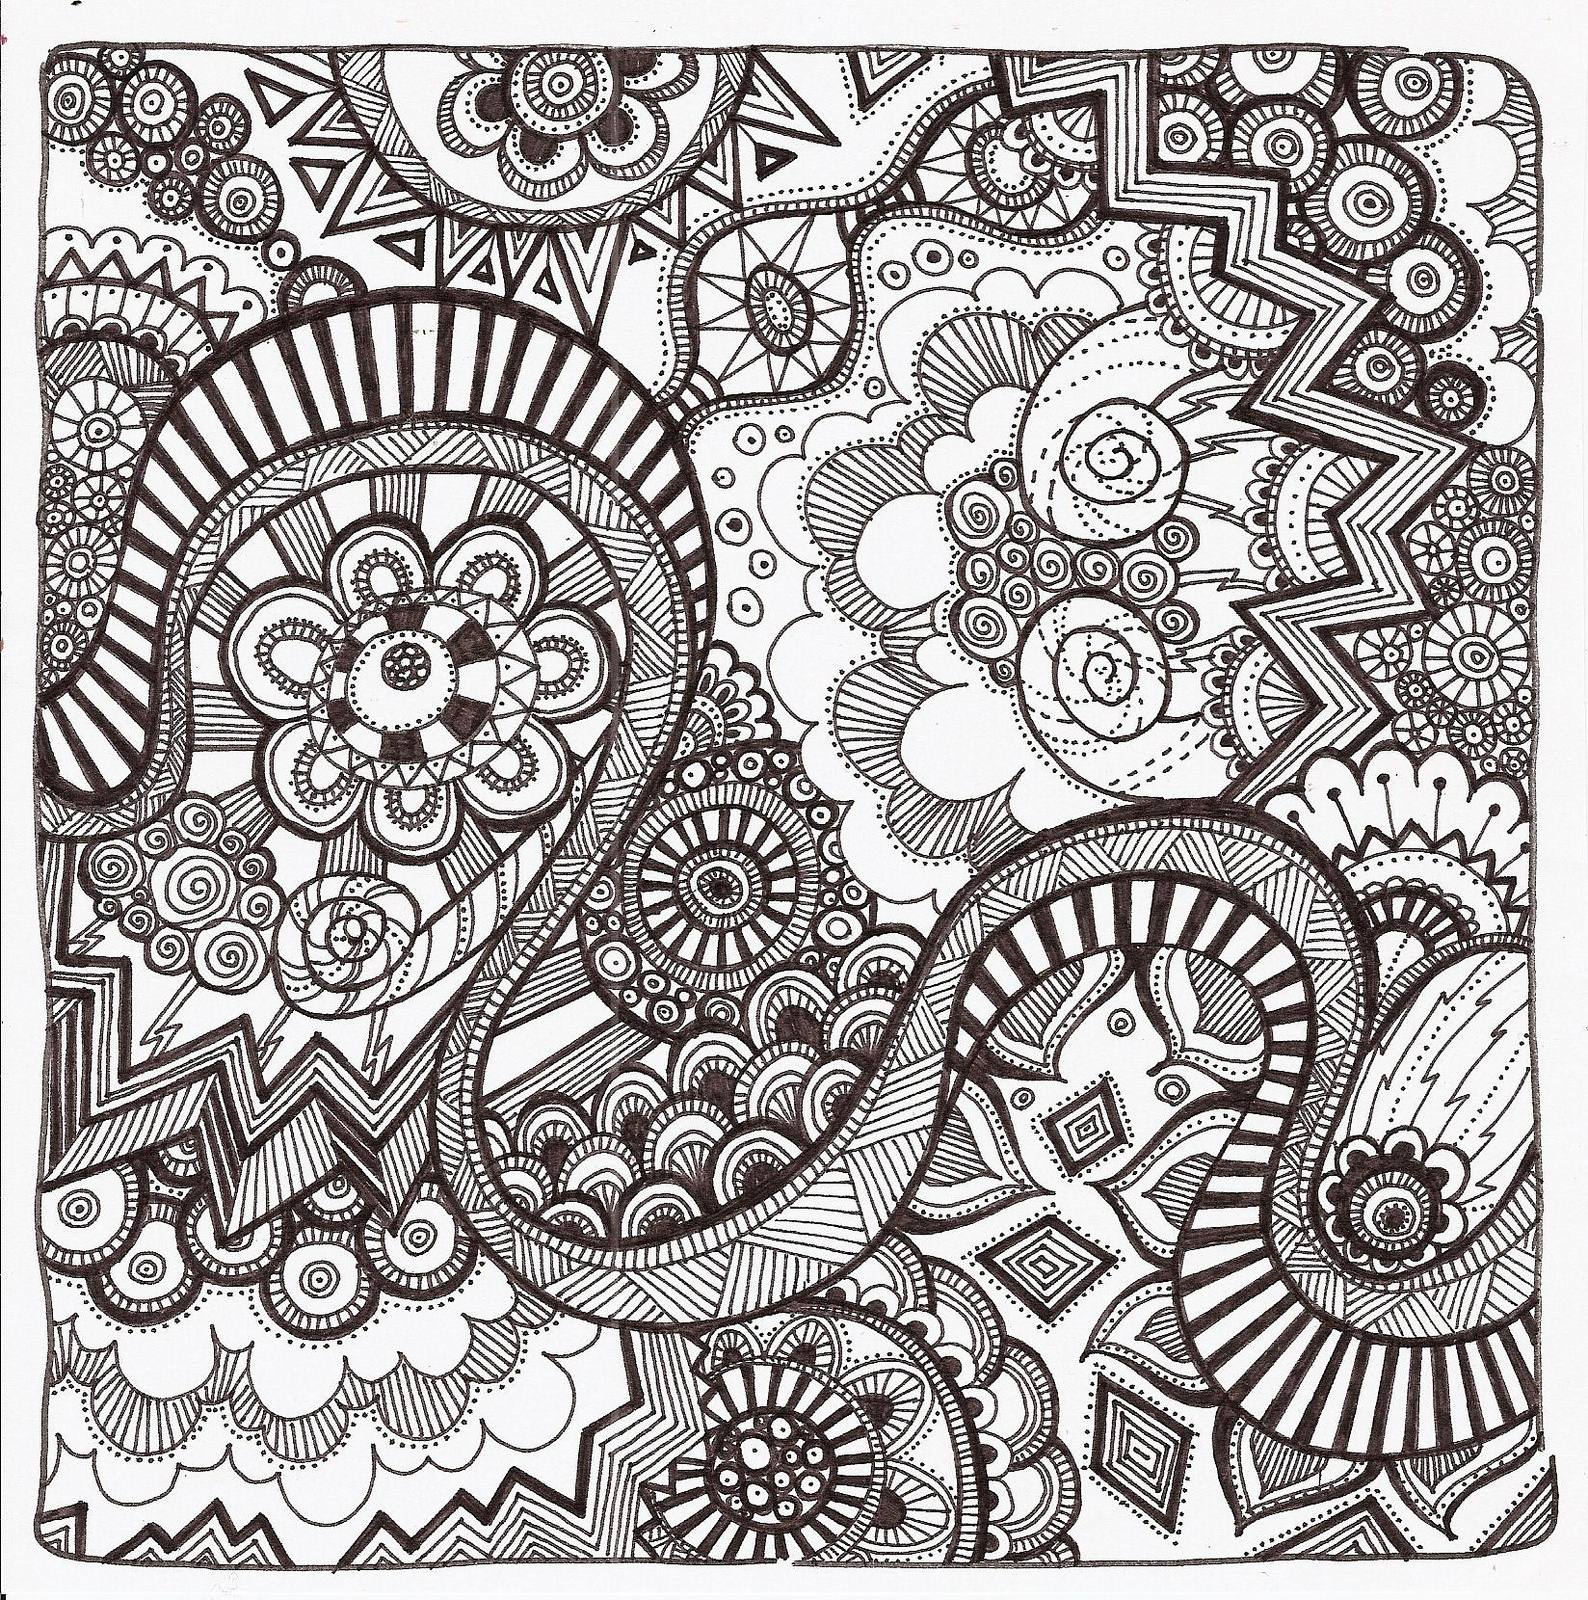 Free Printable Zentangle Coloring Pages For Adults - Free Printable Doodle Patterns